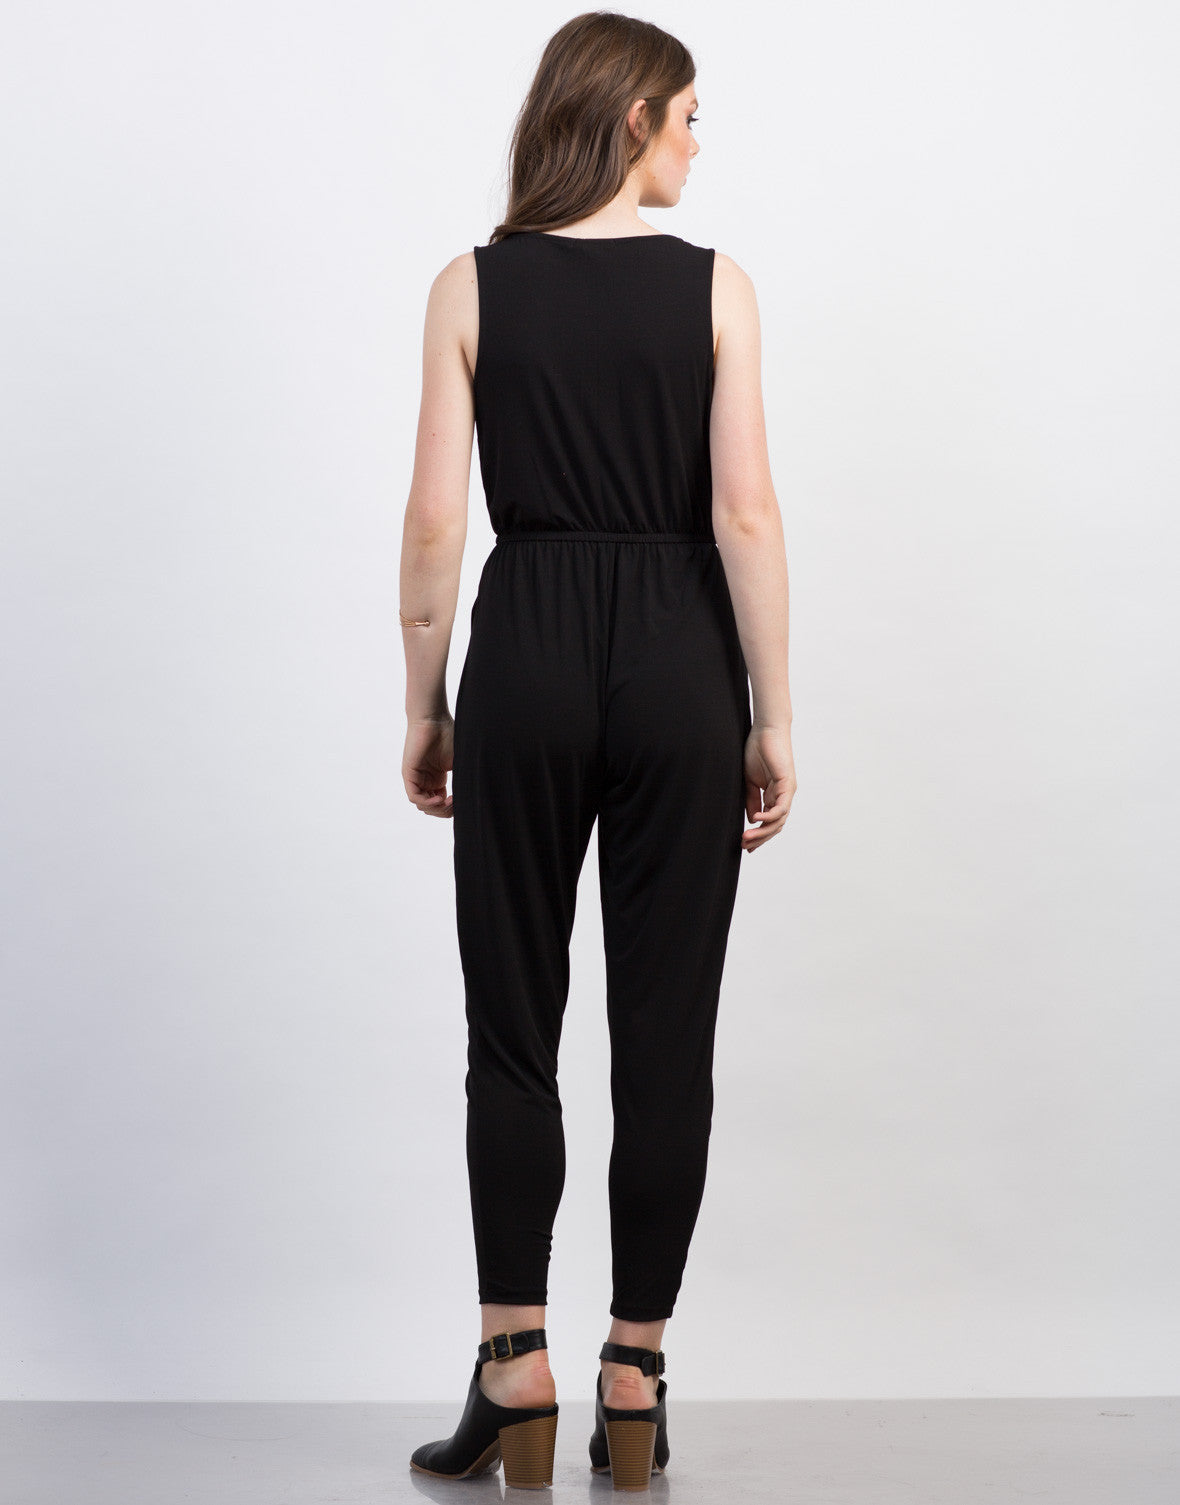 Back View of Zipped Up Jumpsuit